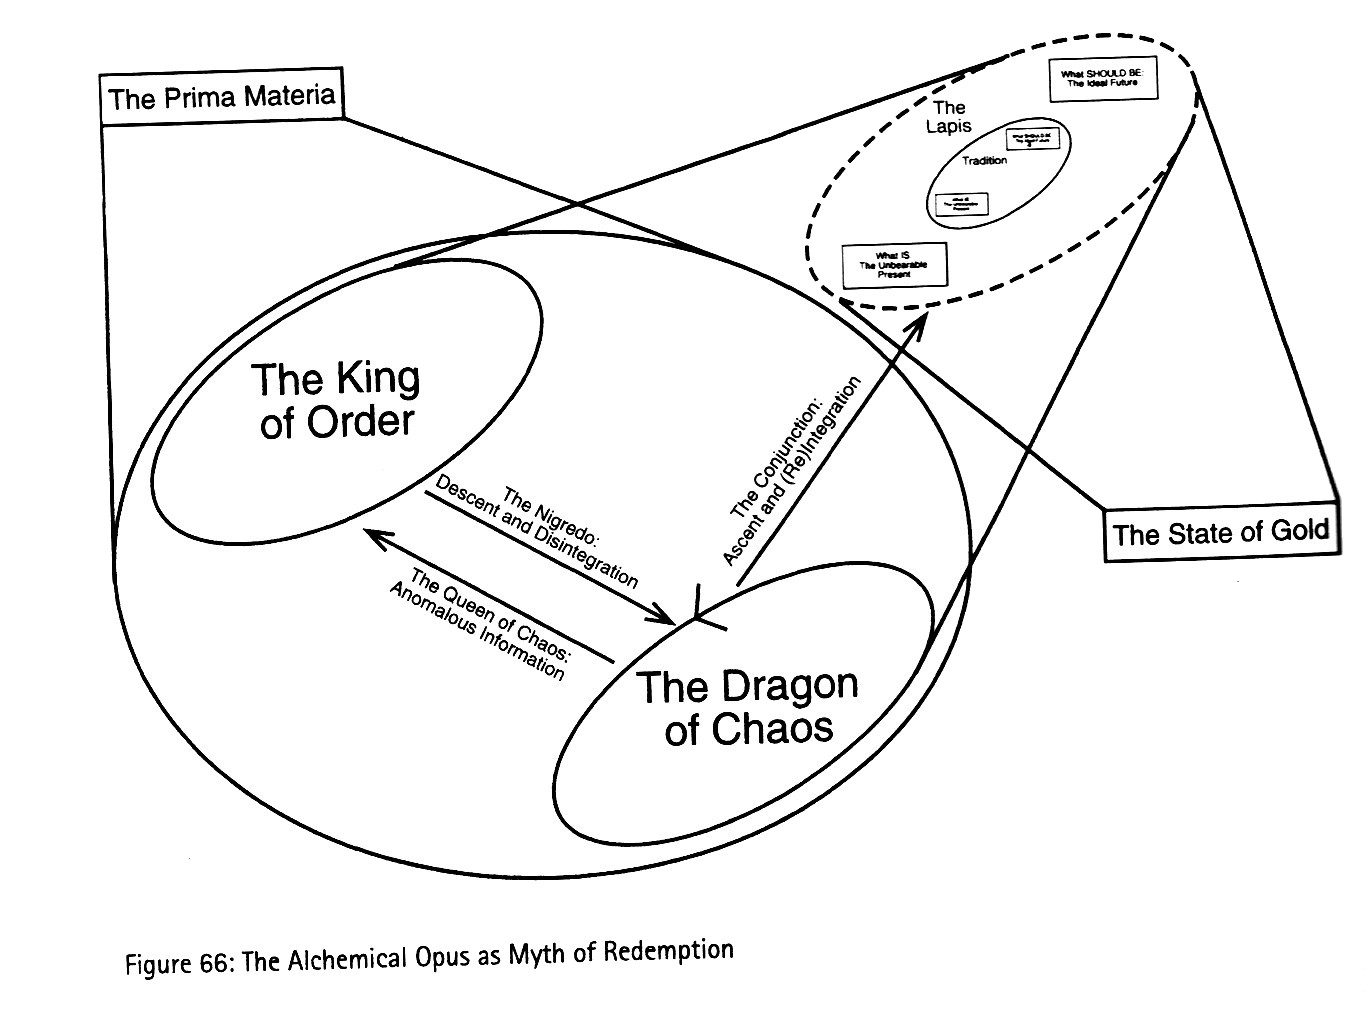 medium resolution of i suspect many of his fans haven t read his previous maps of meaning the diagrams in it were described on my twitter feed as dungeons dragons campaign maps